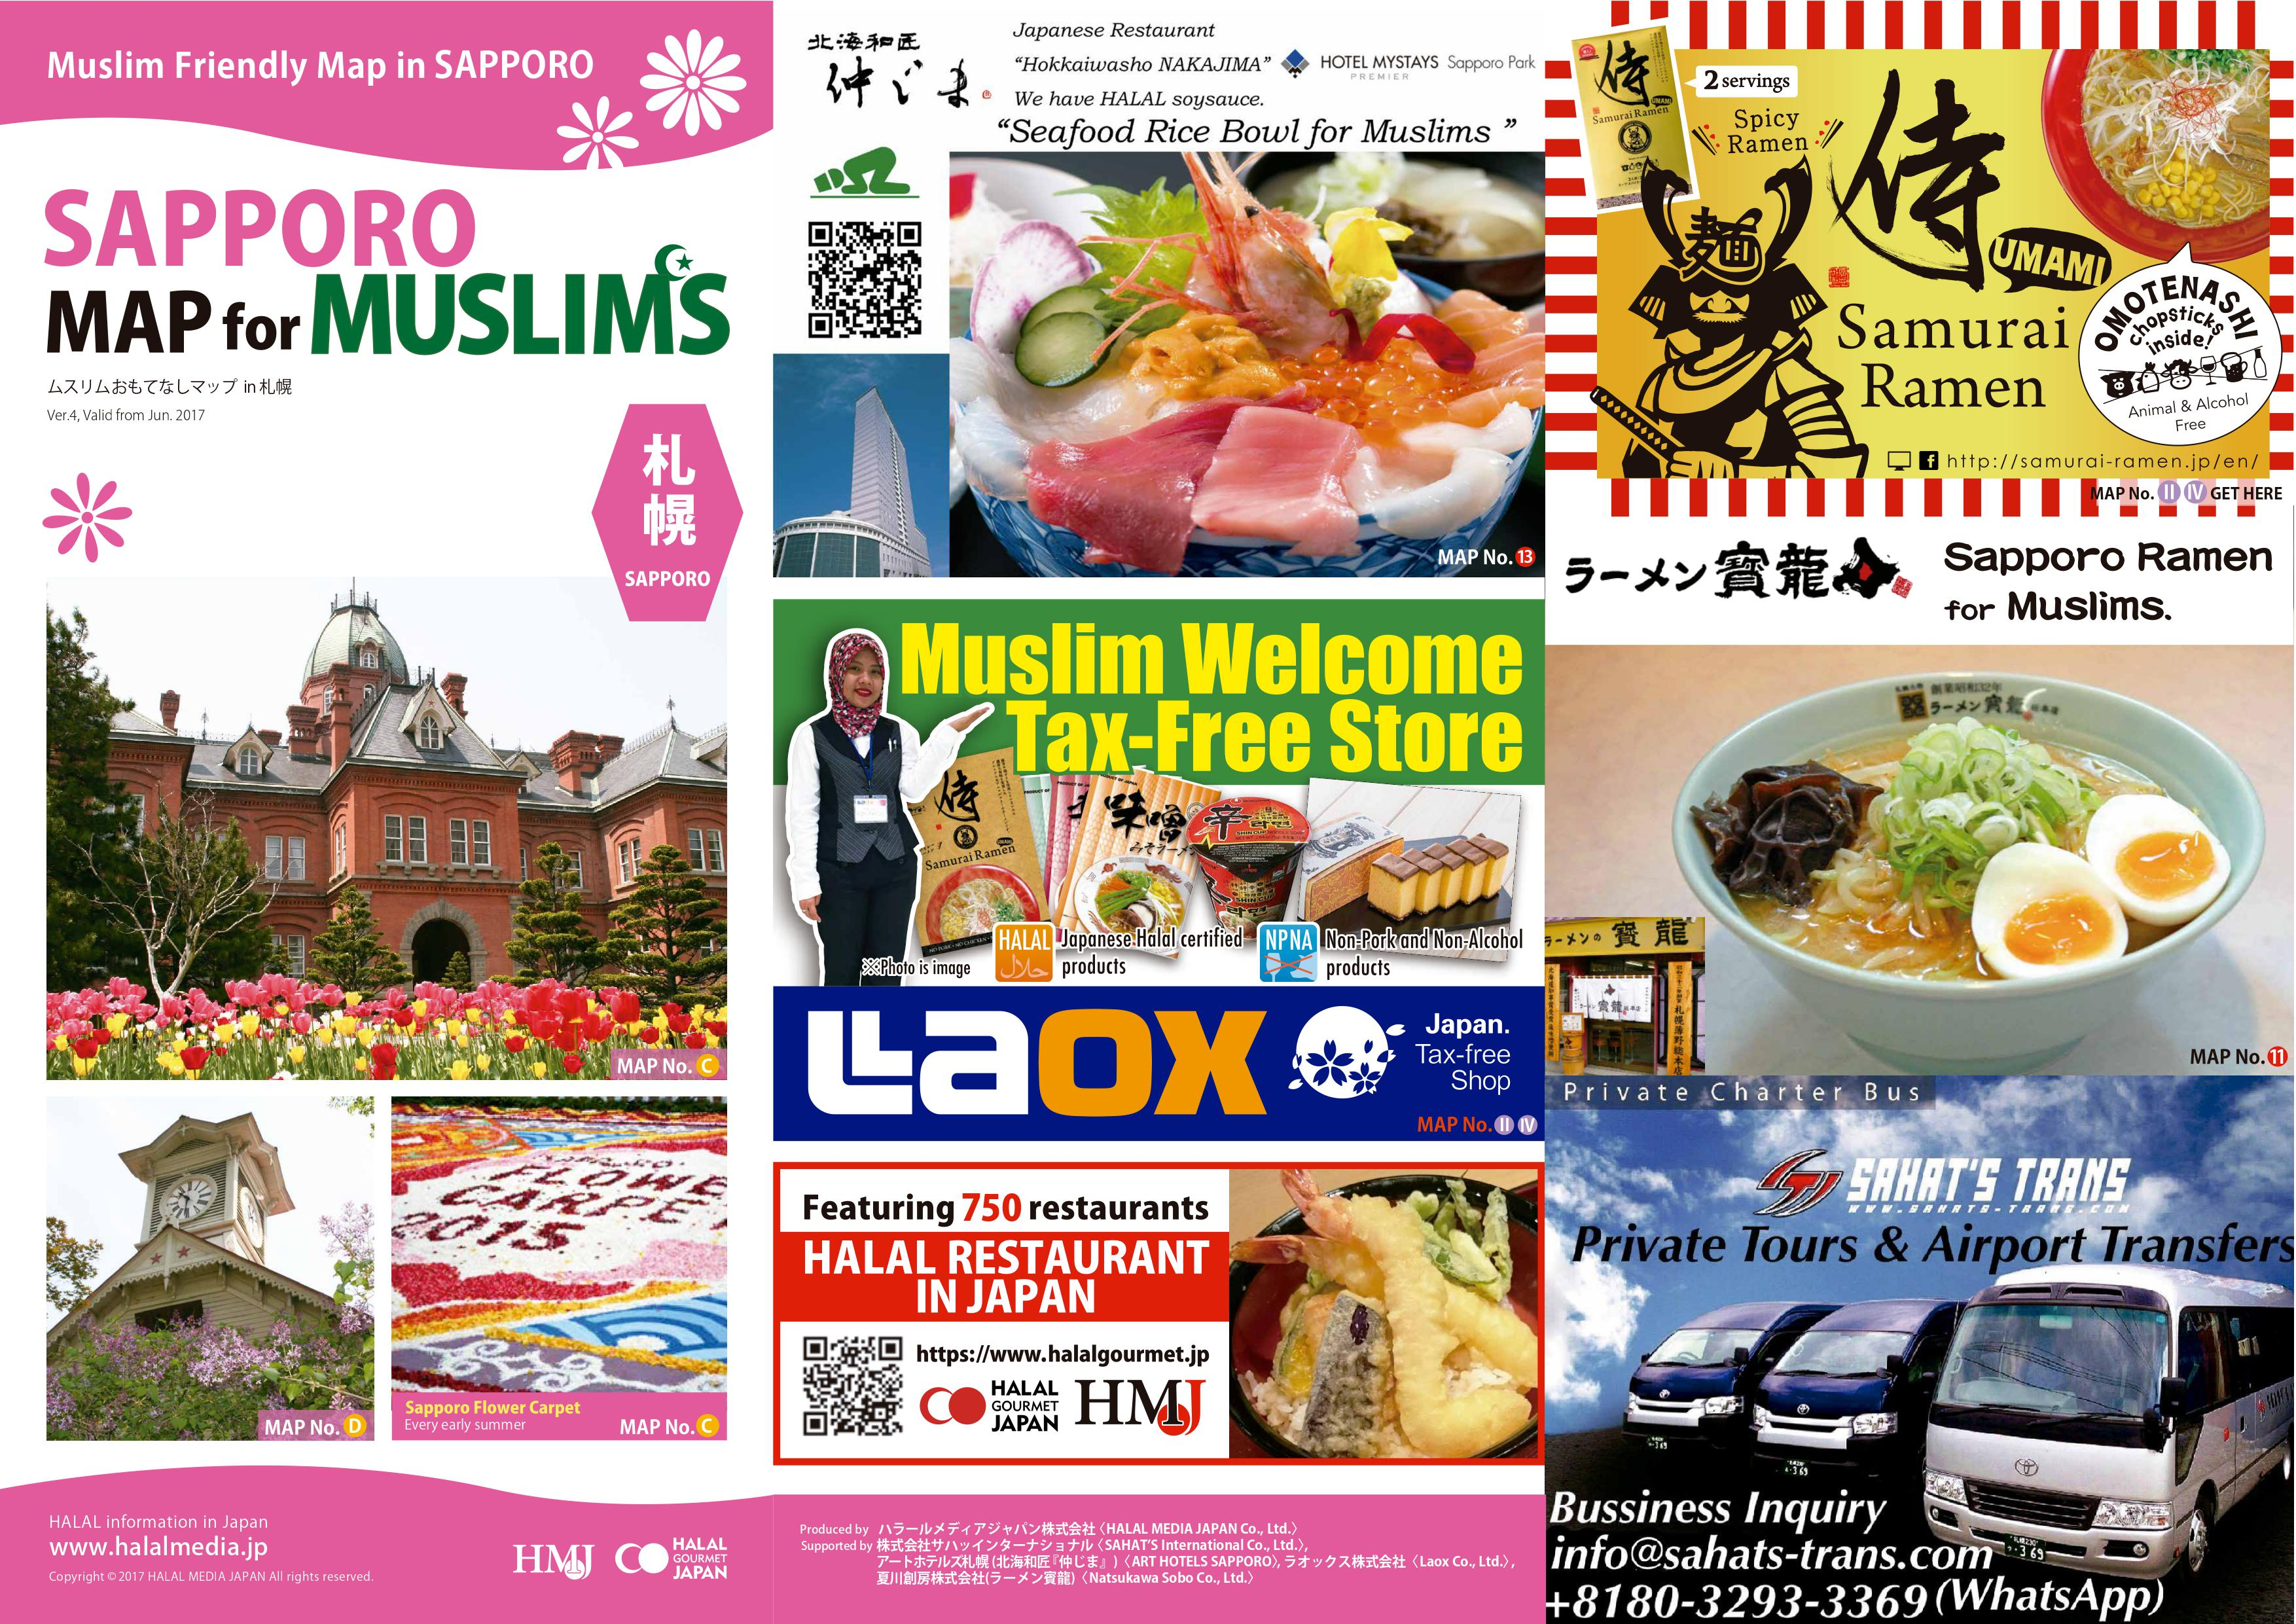 Sightseeing Guide   Halal Media Japan on tourist map of rangoon, tourist map of kyoto, tourist map of yangon, tourist map of jakarta, tourist map of japan, tourist map of seoul, tourist map of xiamen, tourist map of hokkaido, tourist map of tijuana, tourist map of suzhou,